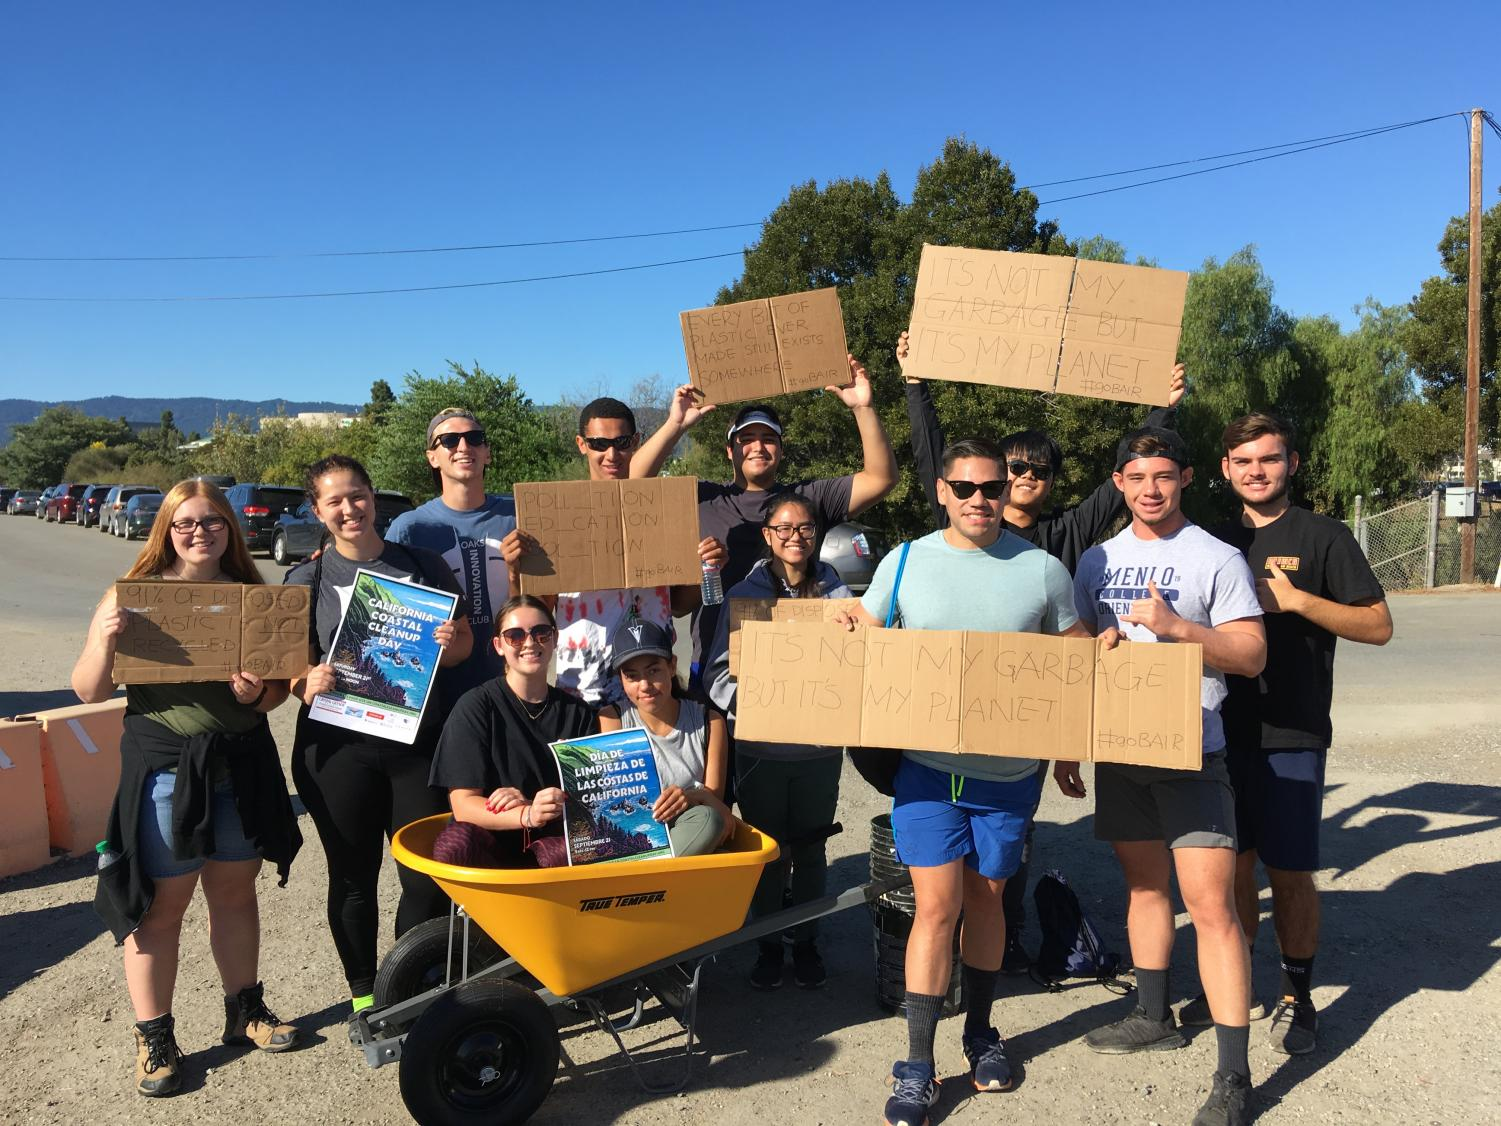 Volunteers for Bair Island Aquatic Center in Redwood City helped clean up debris on September 21, 2019.